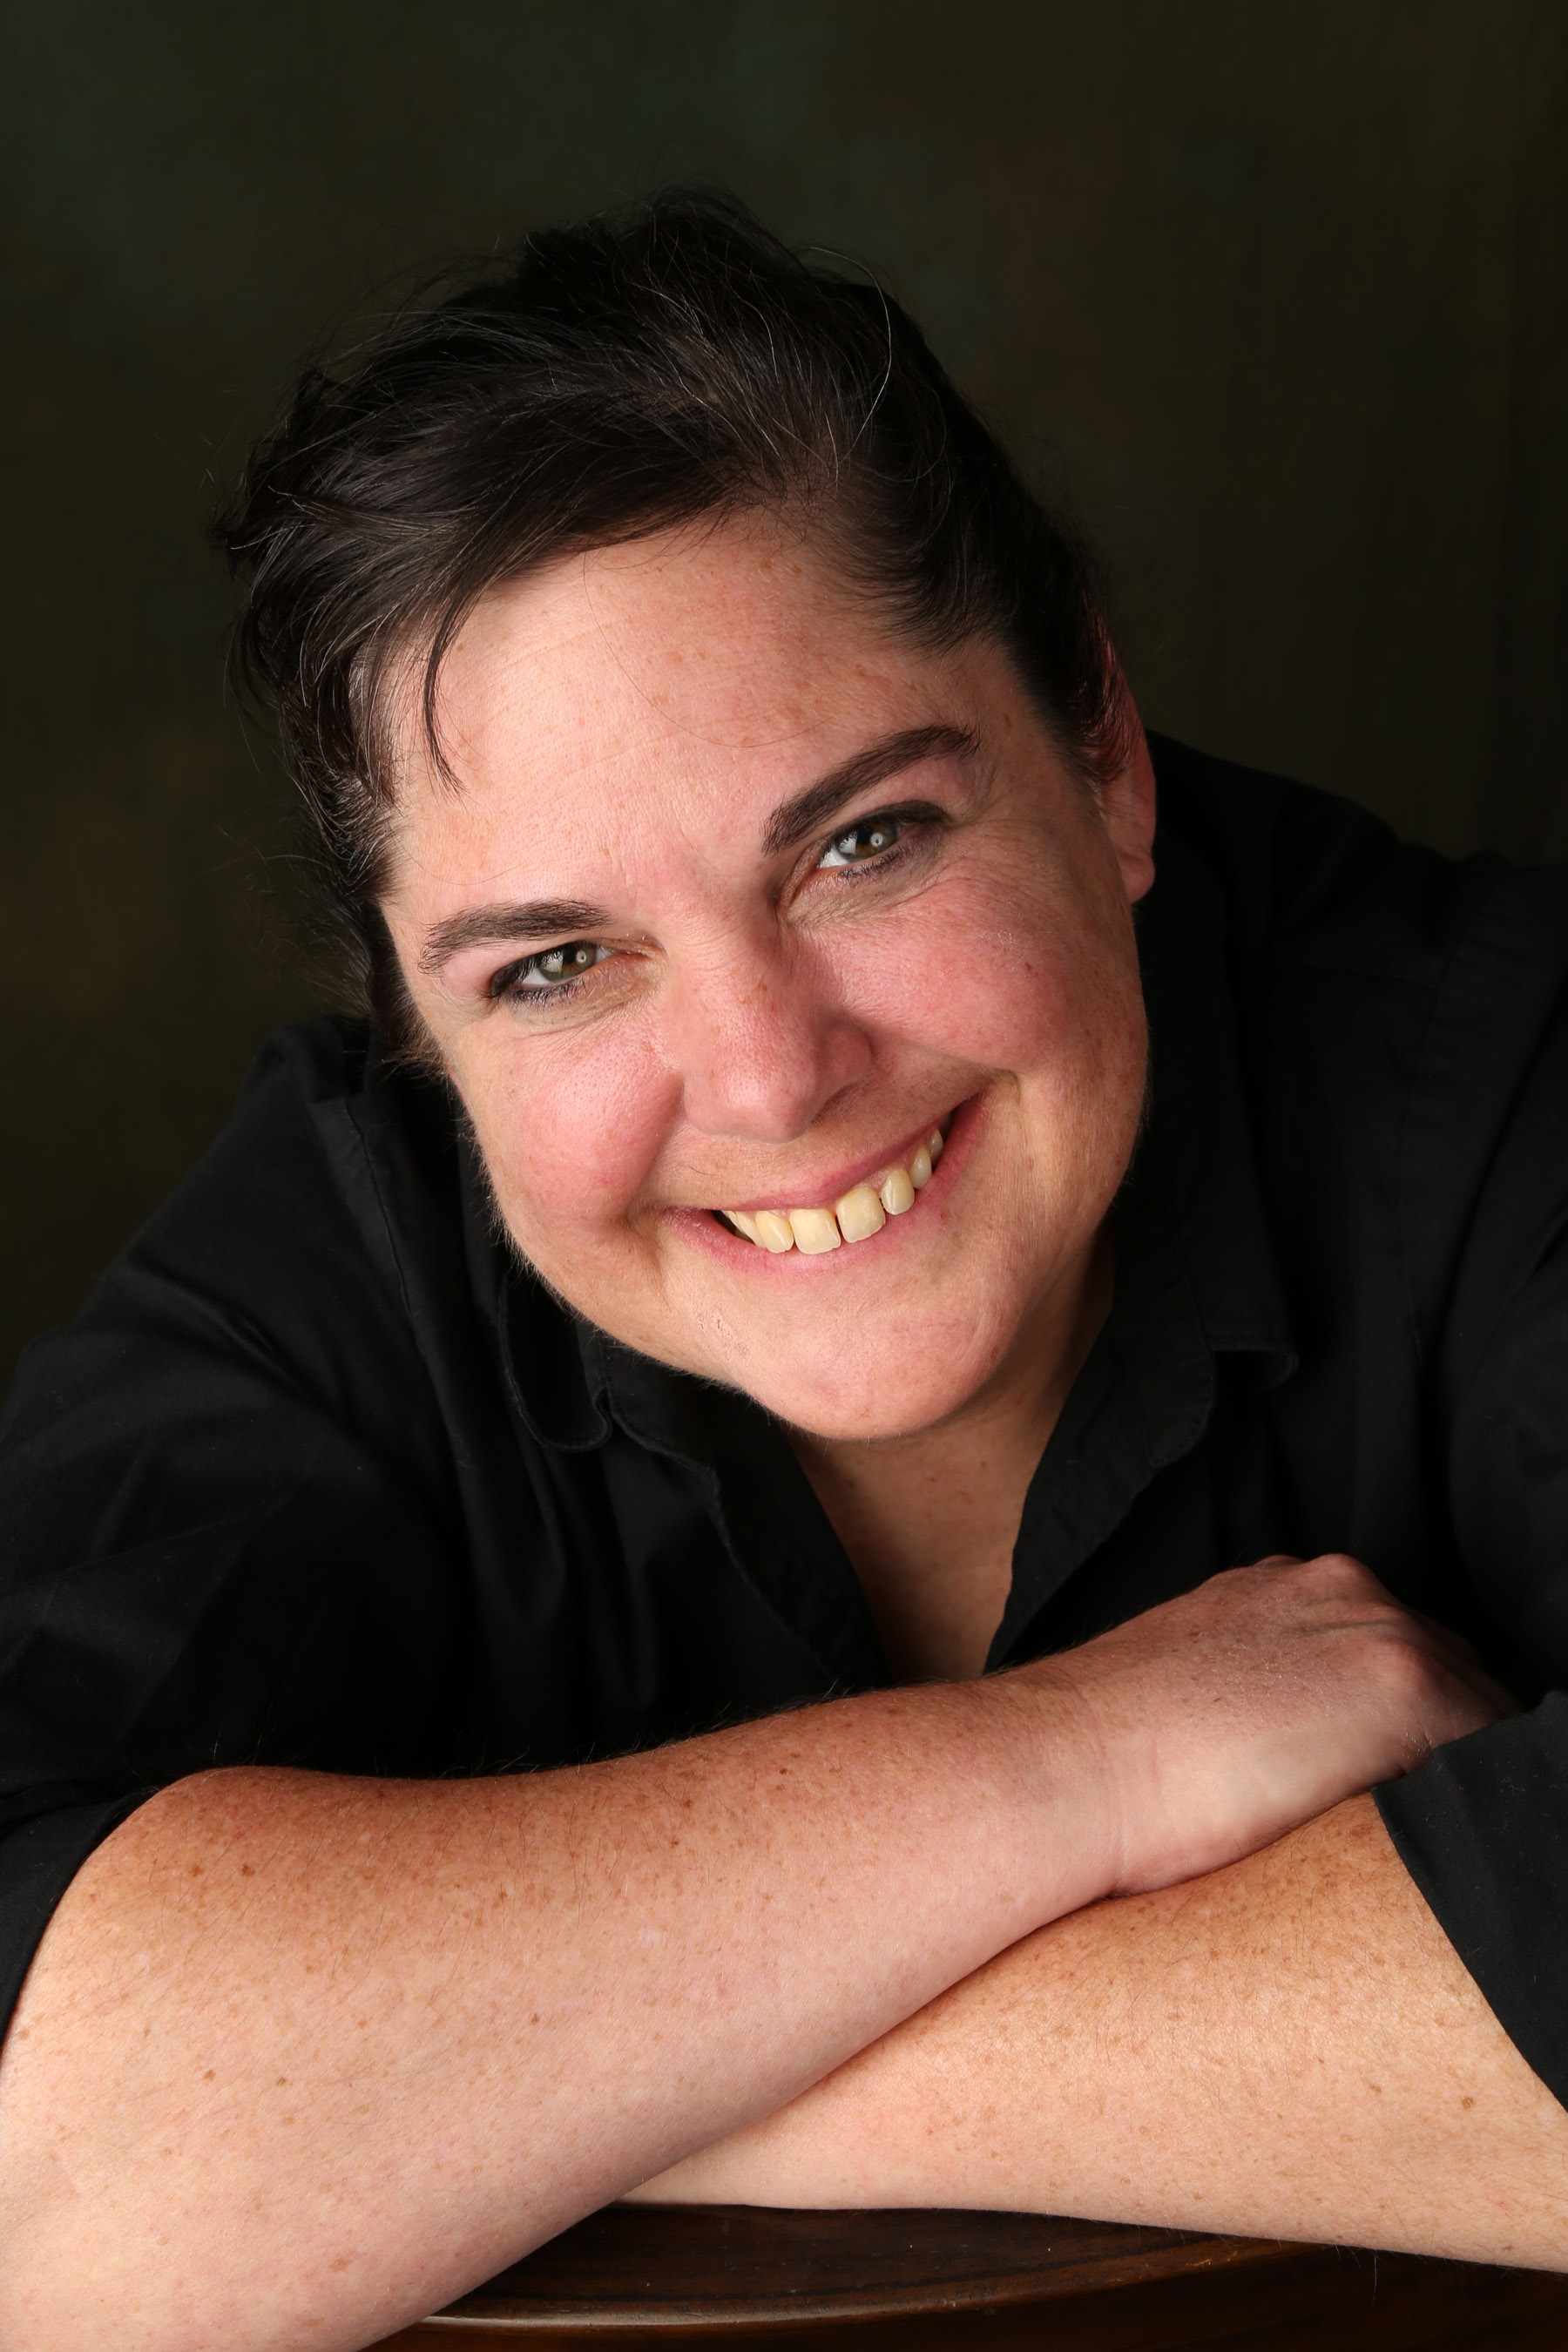 Ann Townsend - LGBTQ Youth Advocate, Author, and Speaker